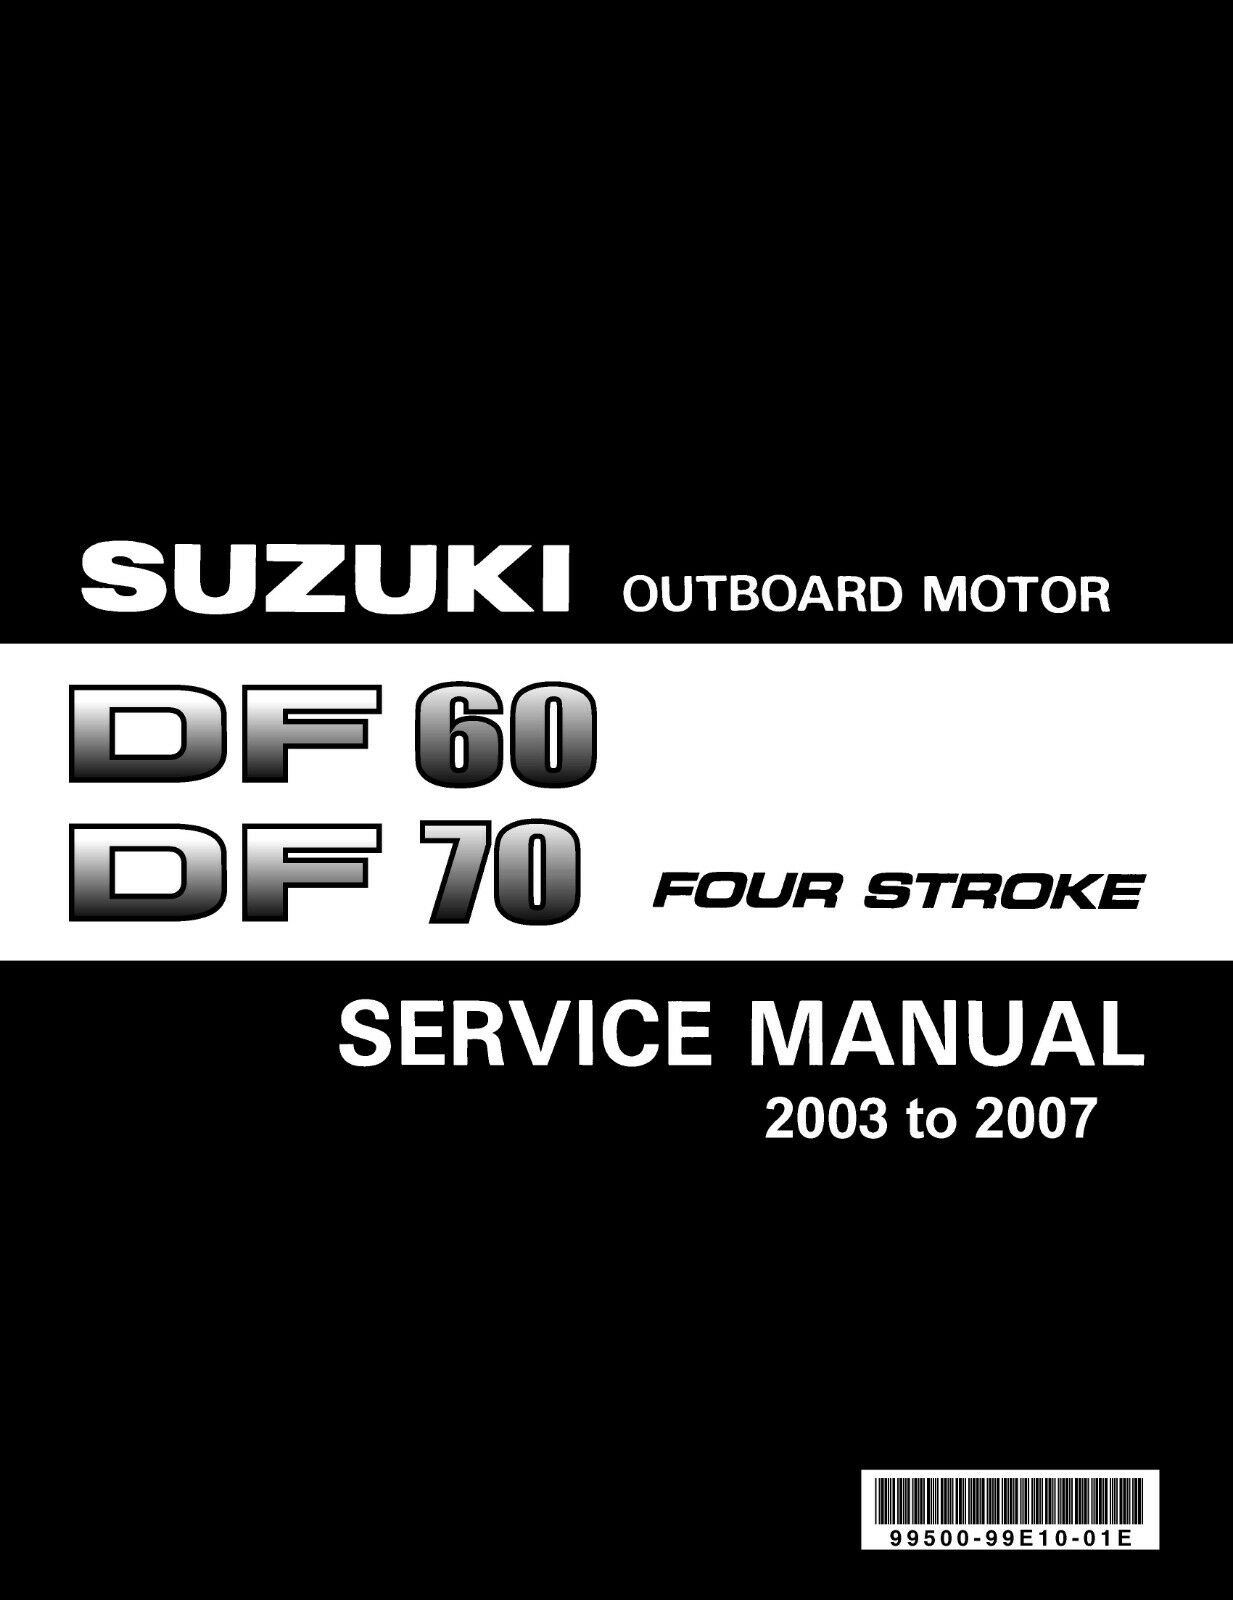 Suzuki DF60 DF70 60hp 70hp Four Stroke Outboard Service Manual 2003-2007 1  of 5Only 4 available ...